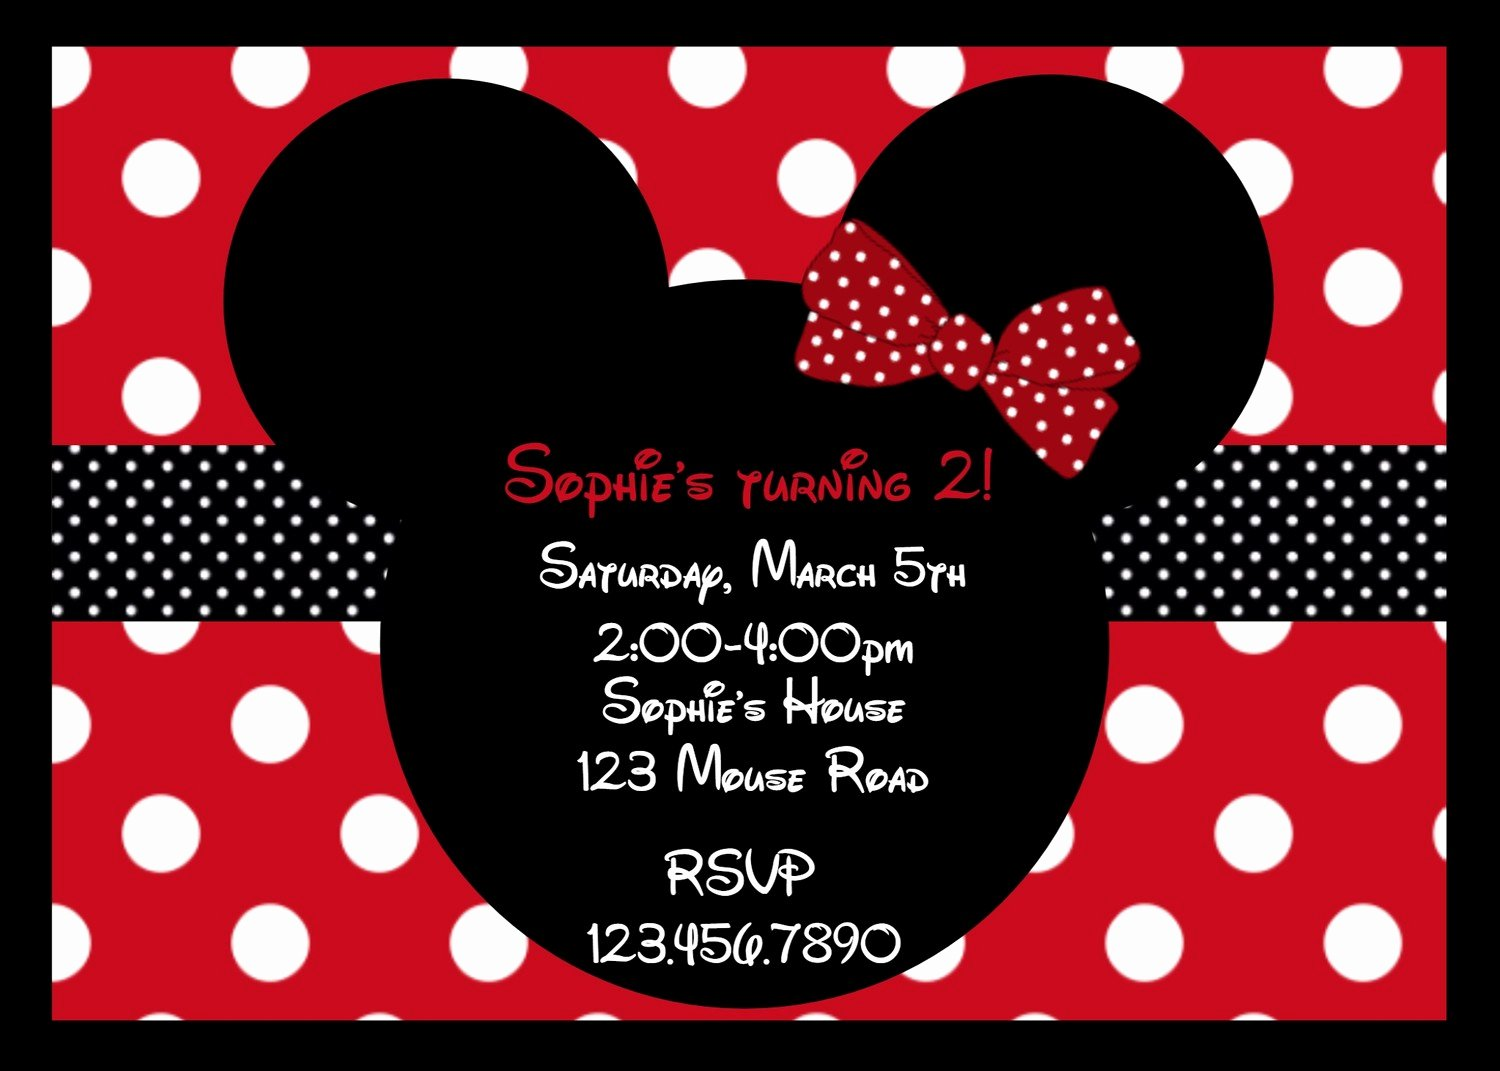 Minnie Mouse Birthday Party Invitations Inspirational Printable Birthday Invitations Girls Mouse Party